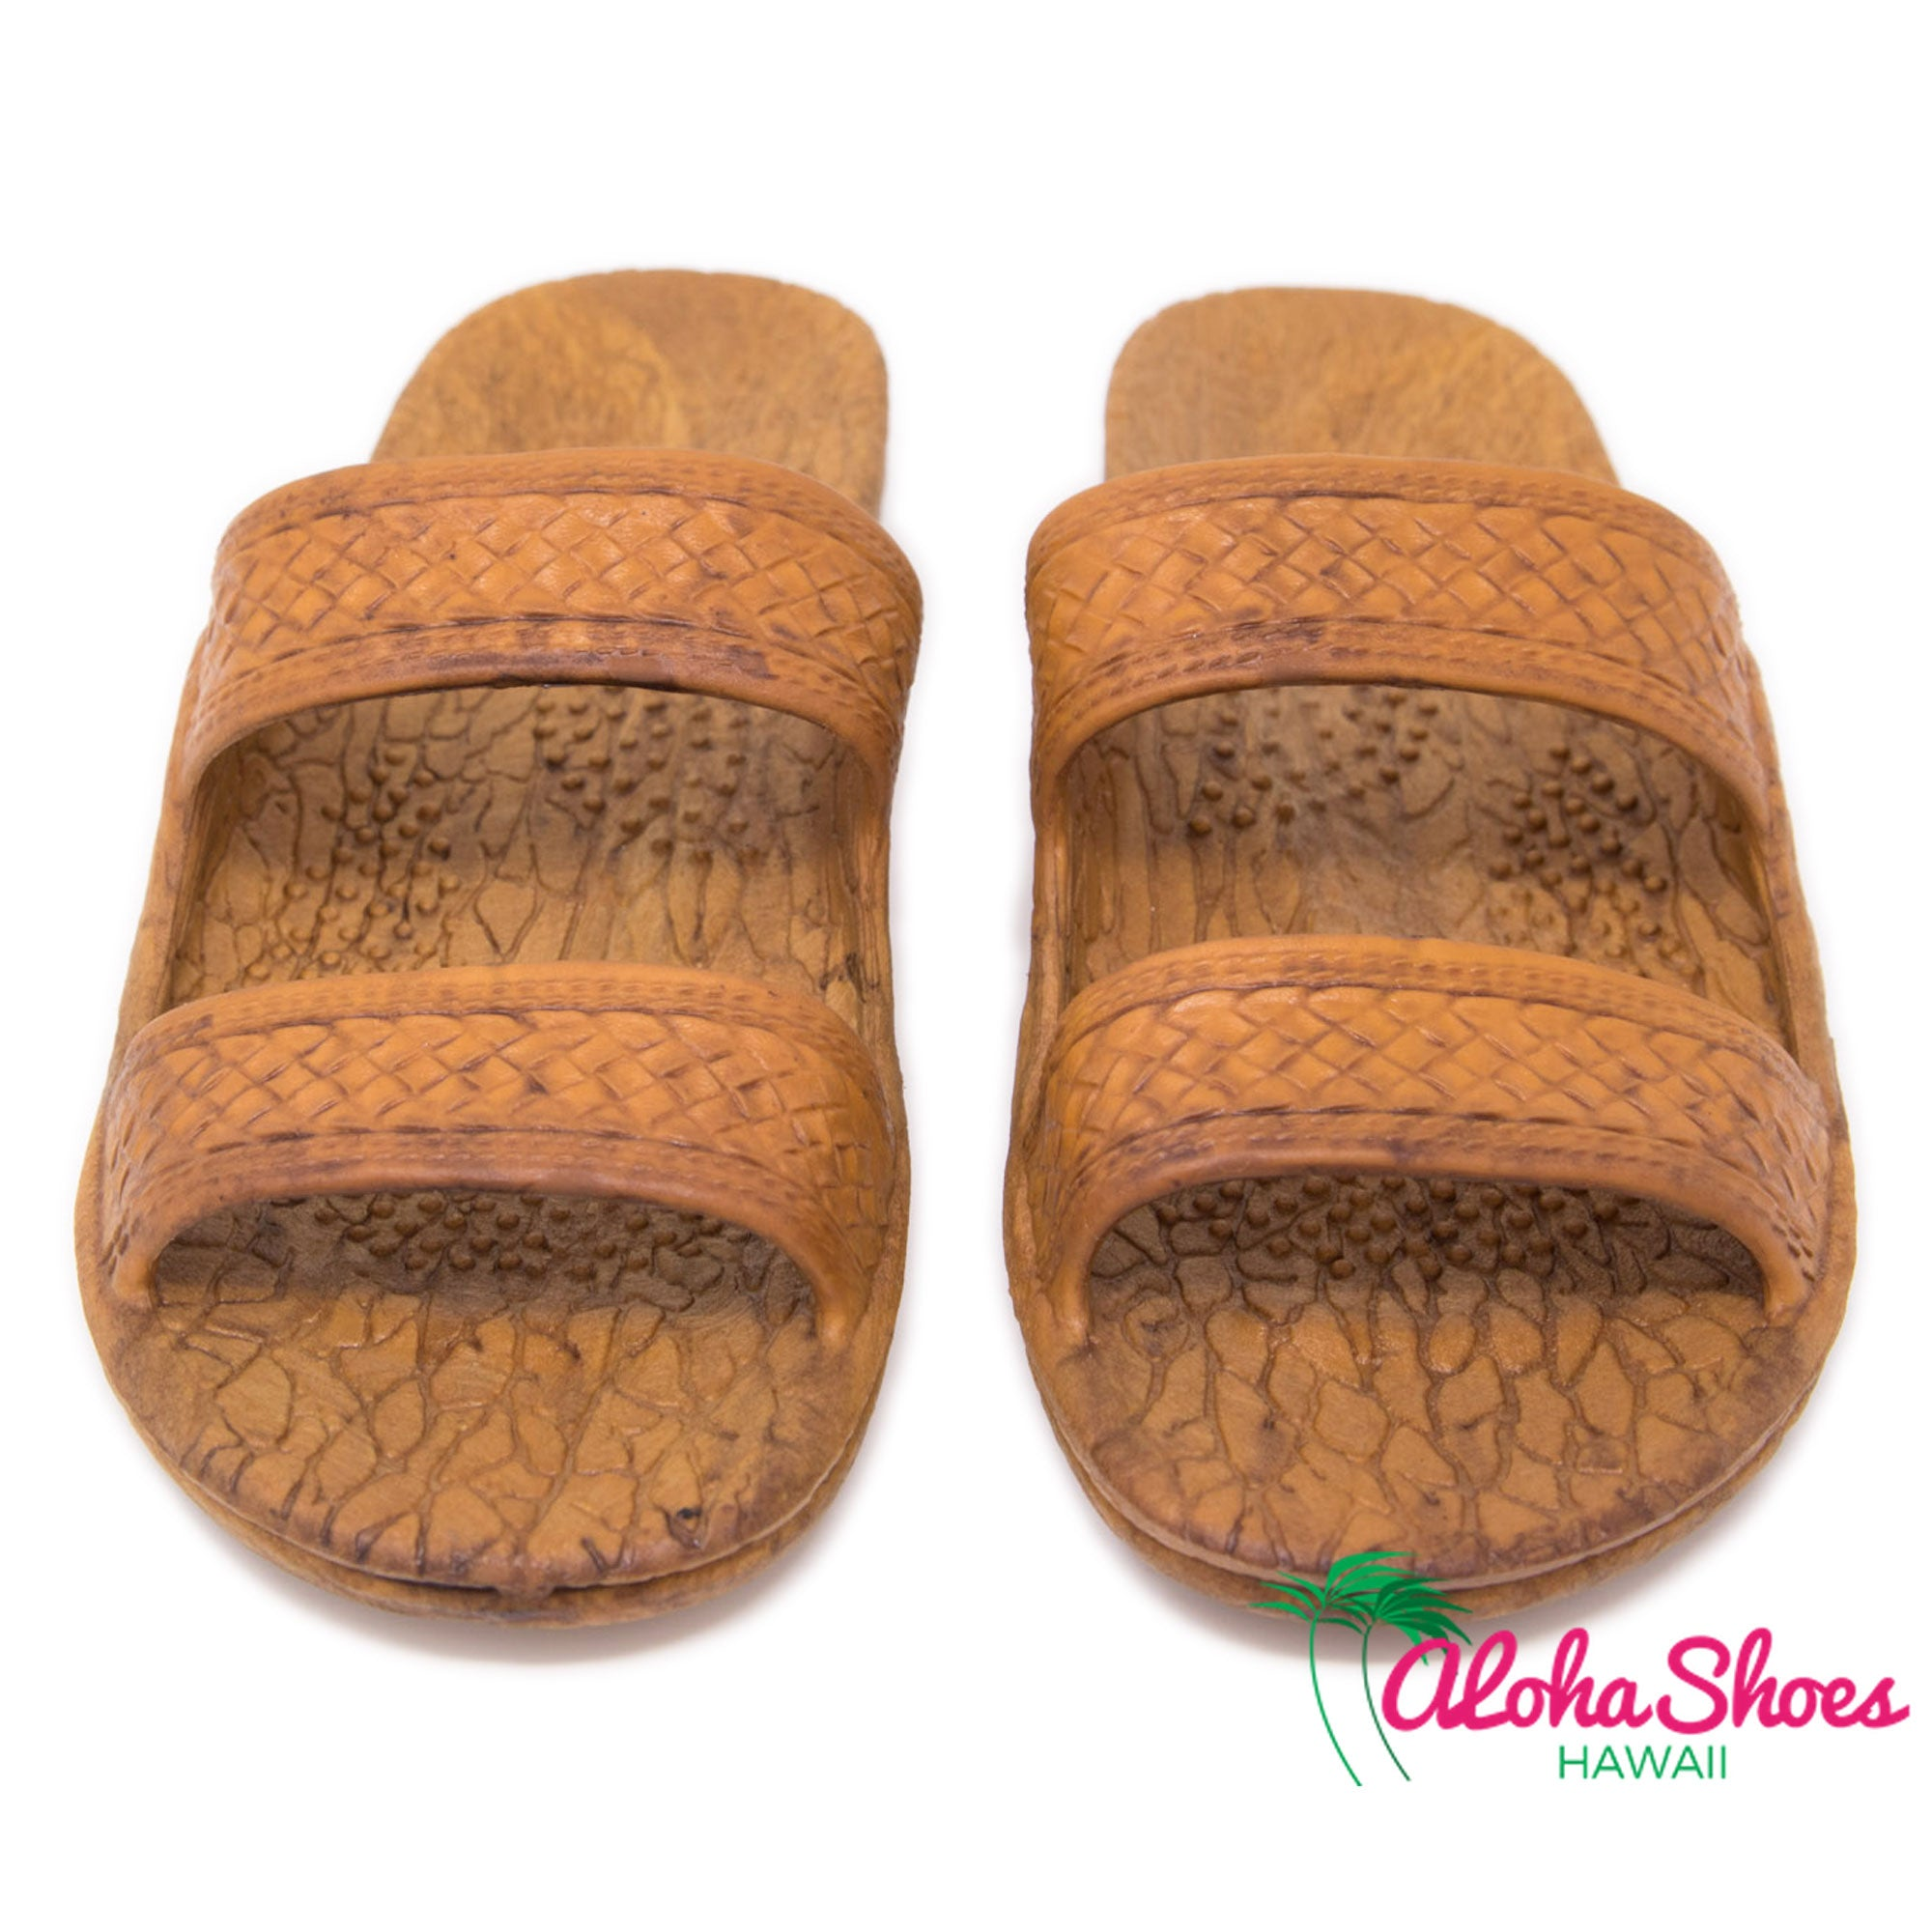 00d7aef251 Pali Hawaii Jandals Light Brown Classics - AlohaShoes.com. Pali Hawaii  Jandals Light Brown Classics - AlohaShoes.com